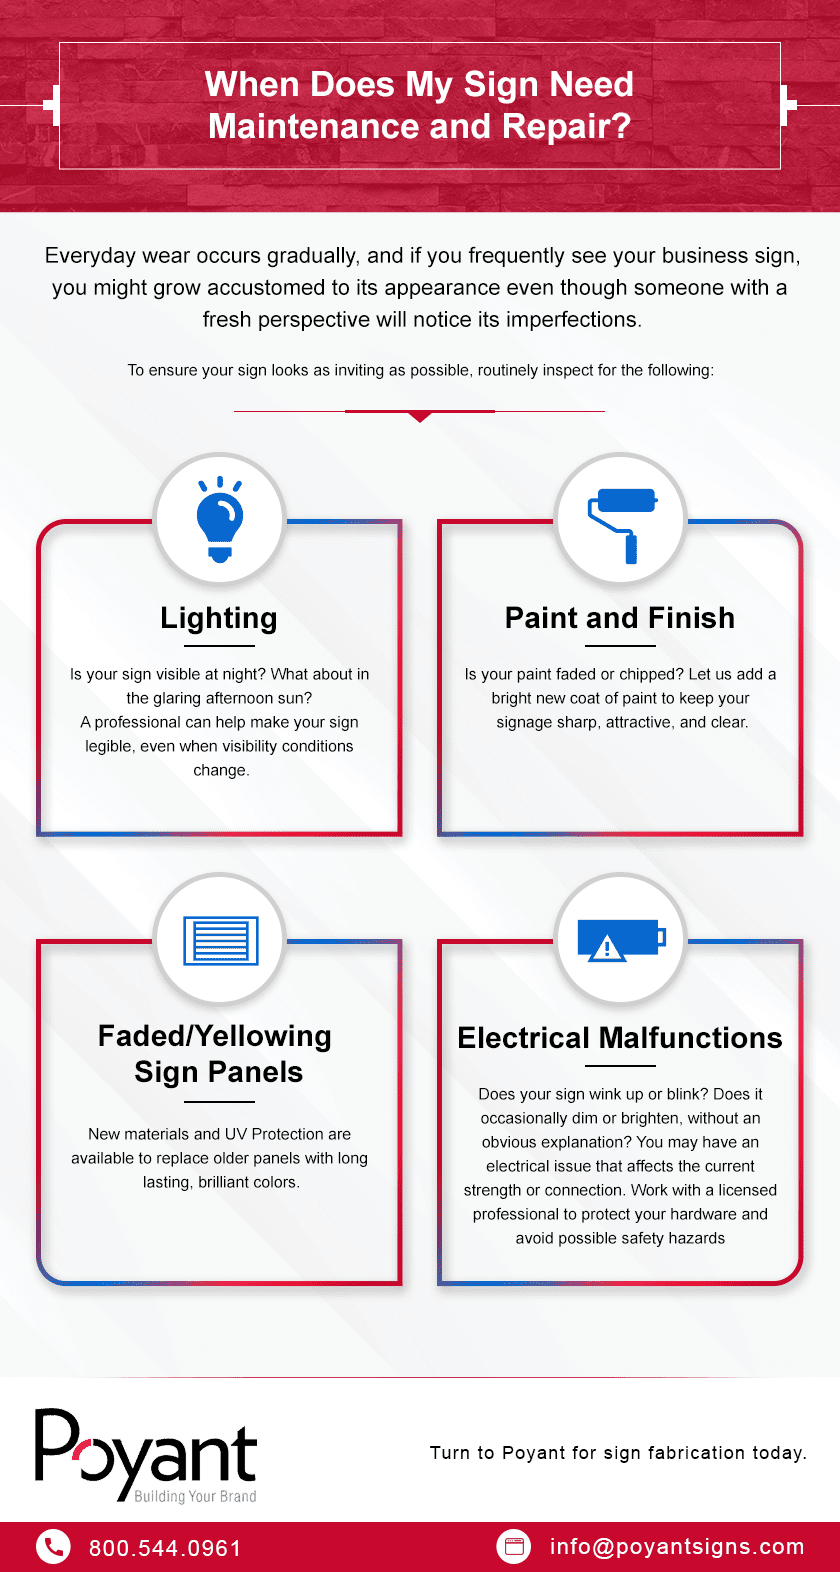 Infographic describing when sign maintenance and repair is needed